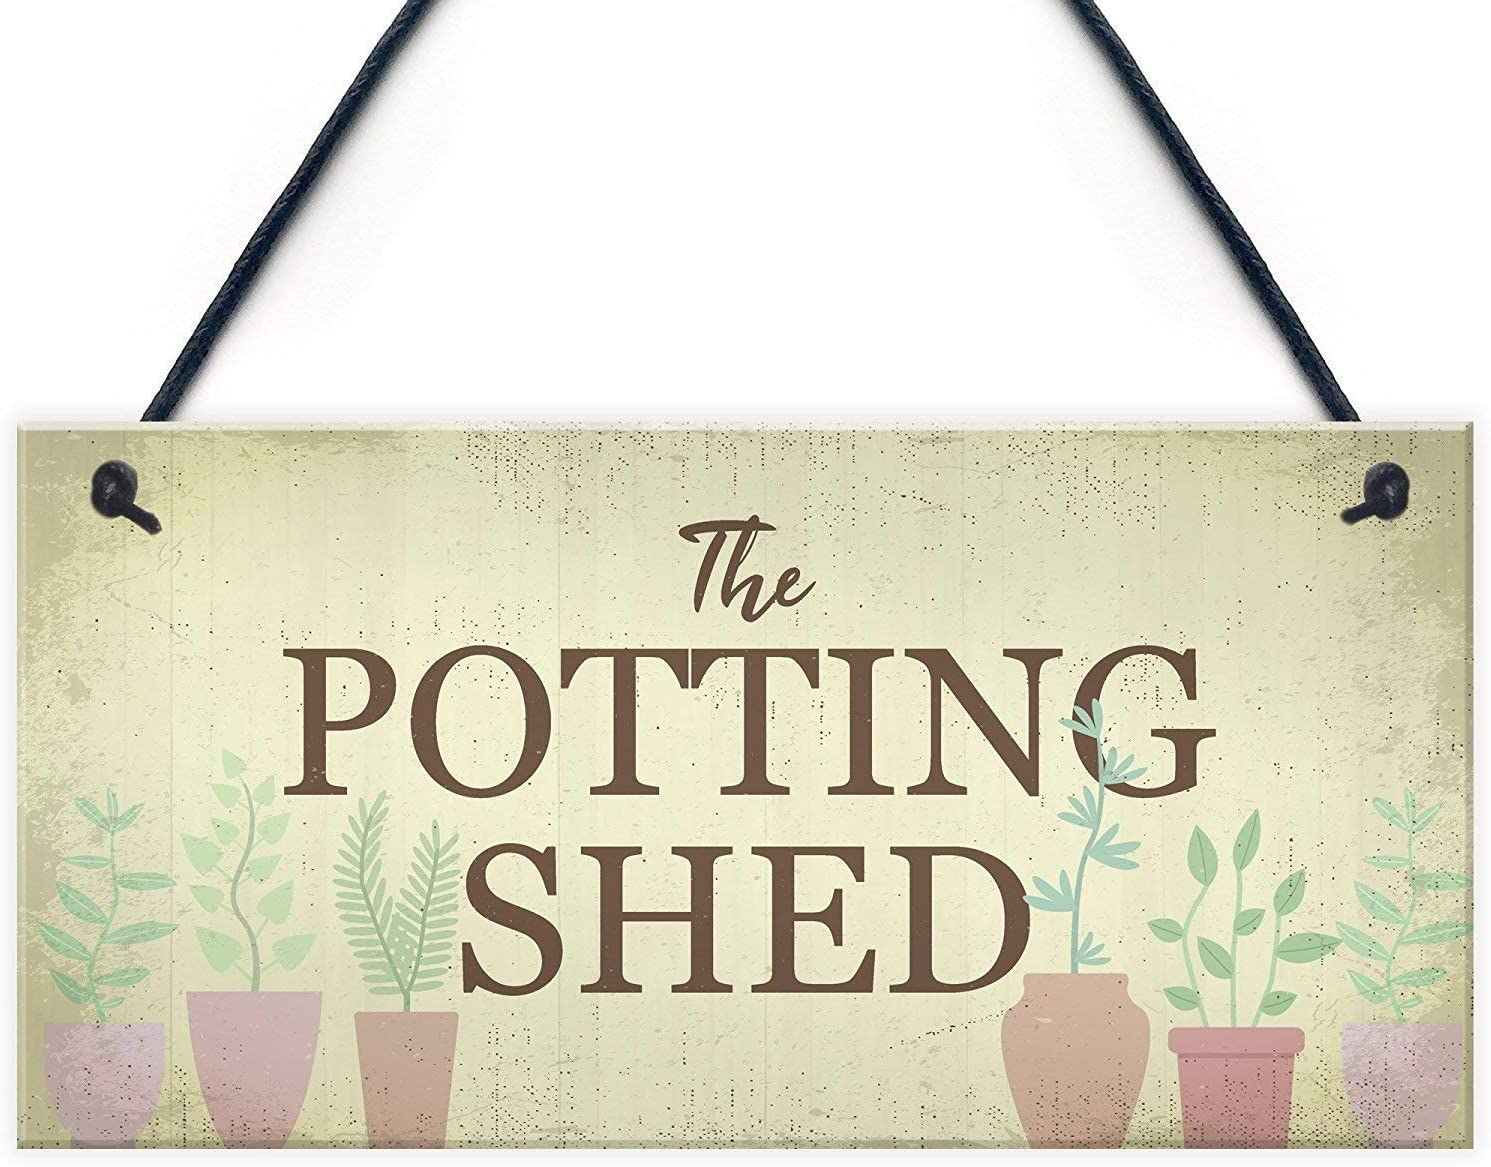 JIYUANDSY Wooden Sign New The Potting Shed Plaque Garden Greenhouse Sign Dad Grandad Mum Nan Birthday Gift12 x 6